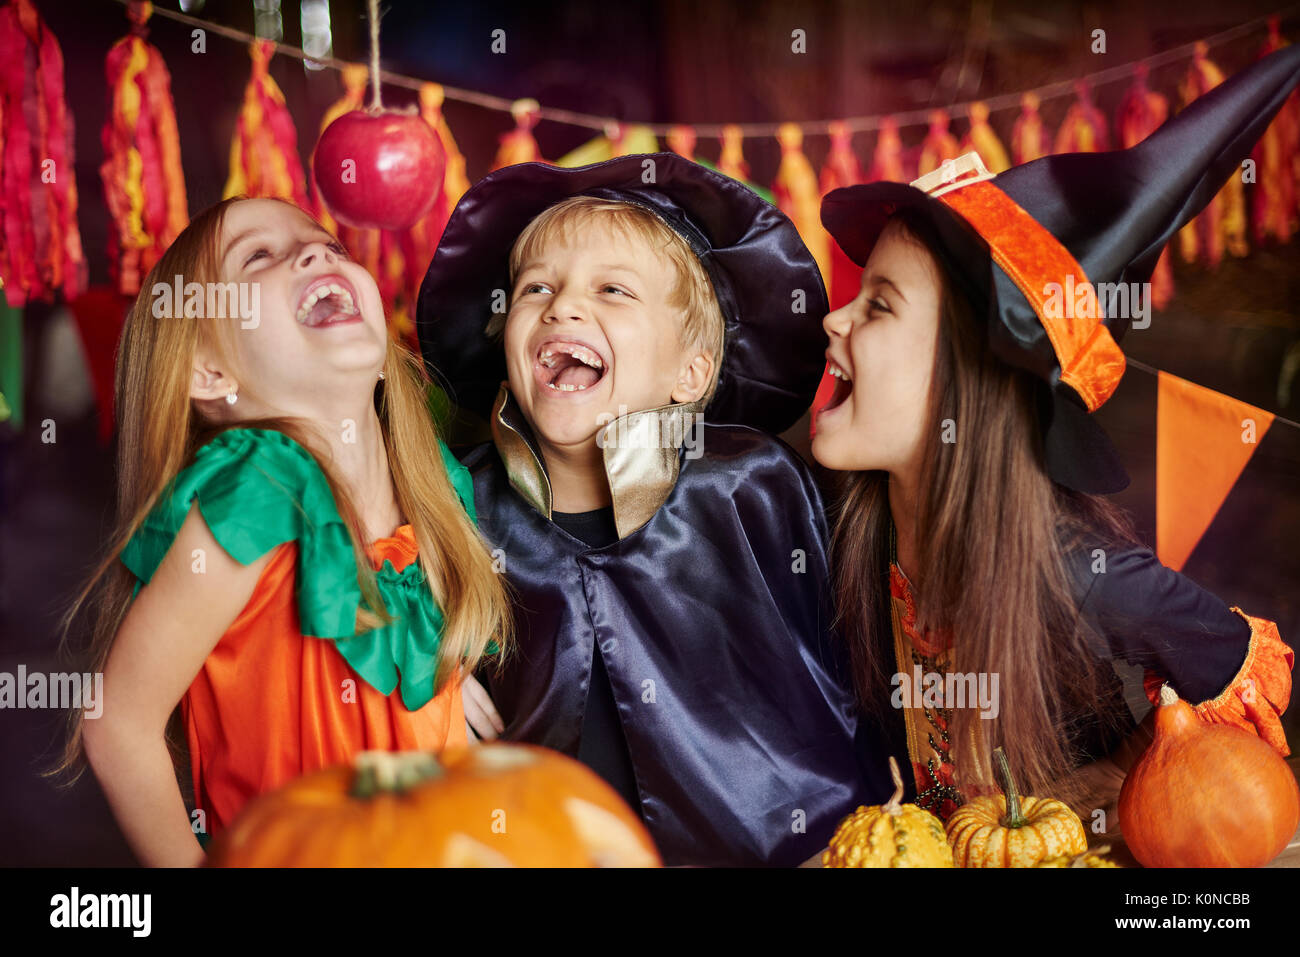 Competition of who will catch the apple as first - Stock Image